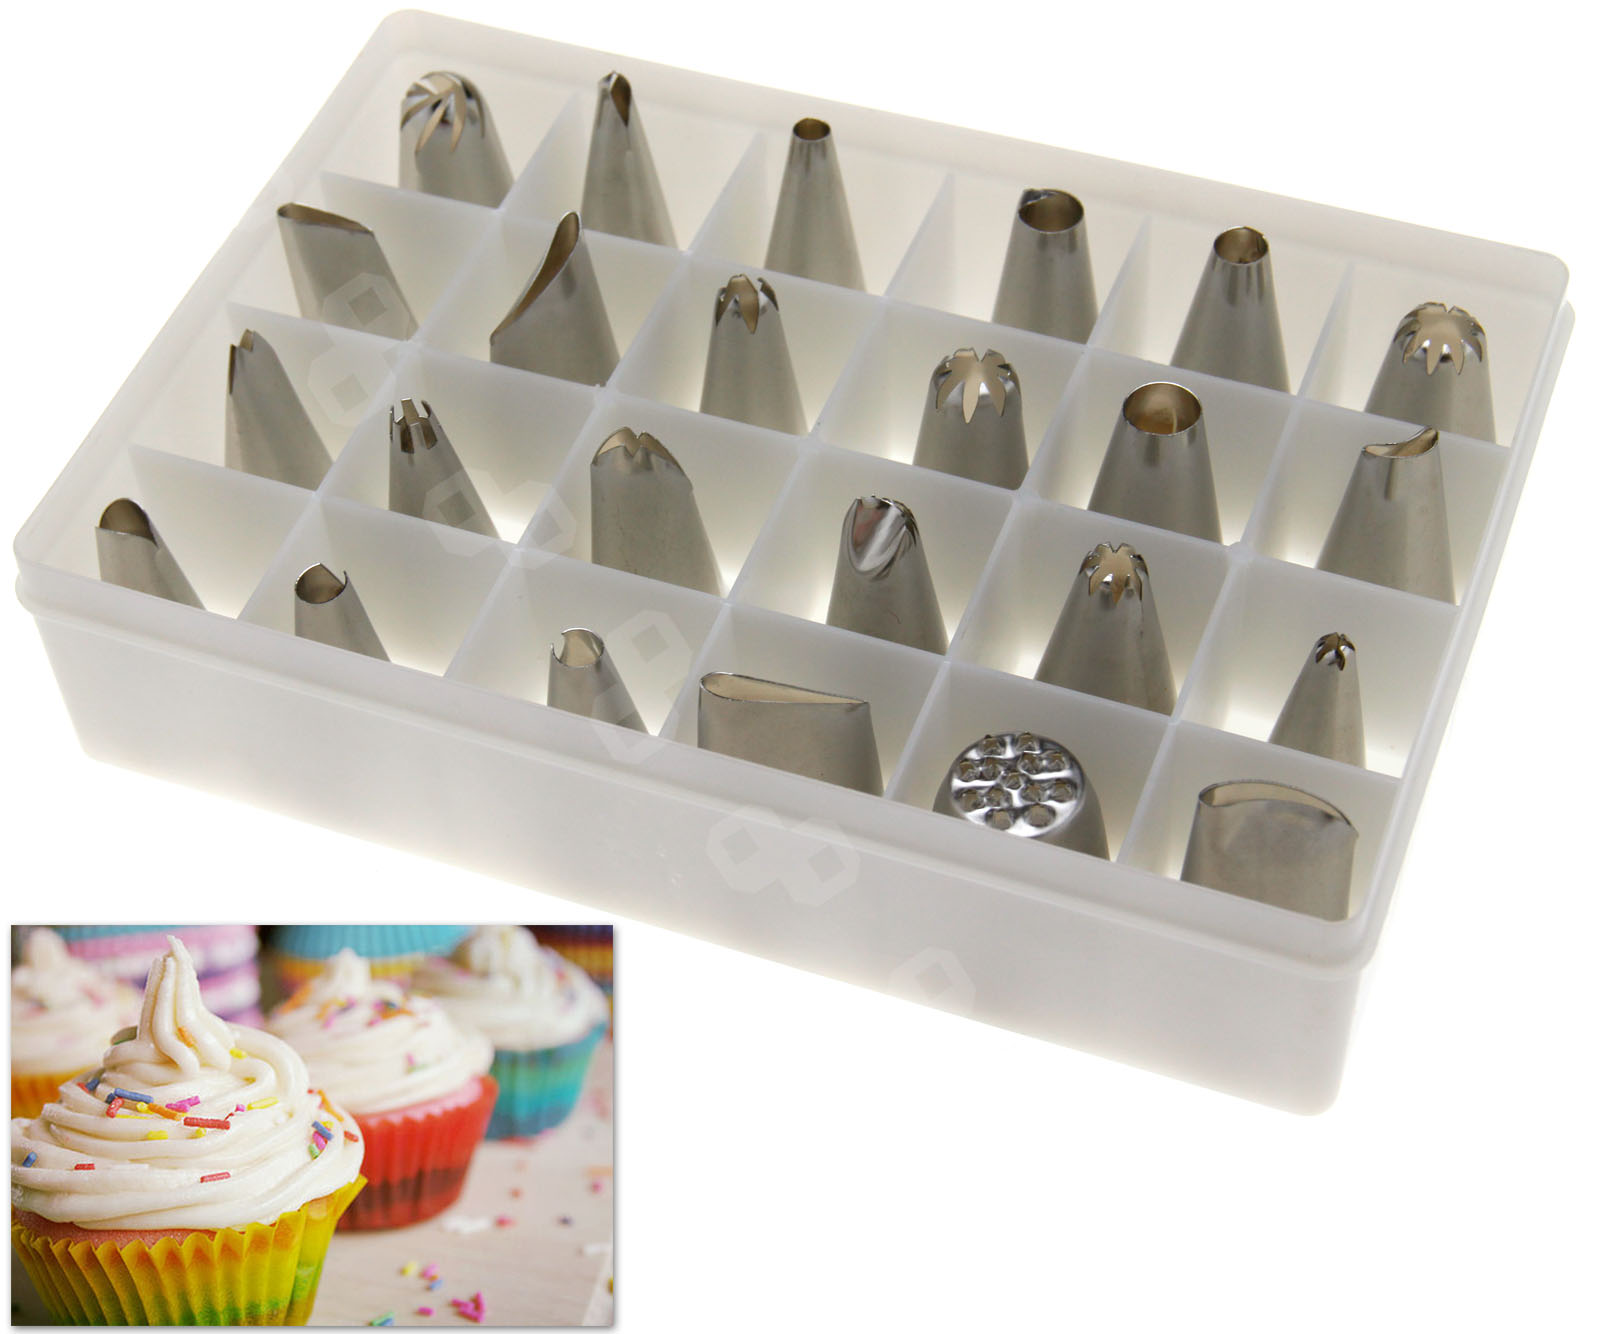 24pcs Pastry Cake Decorating Nozzles Tips Set Kit for Icing Piping Bag Tool Pen eBay